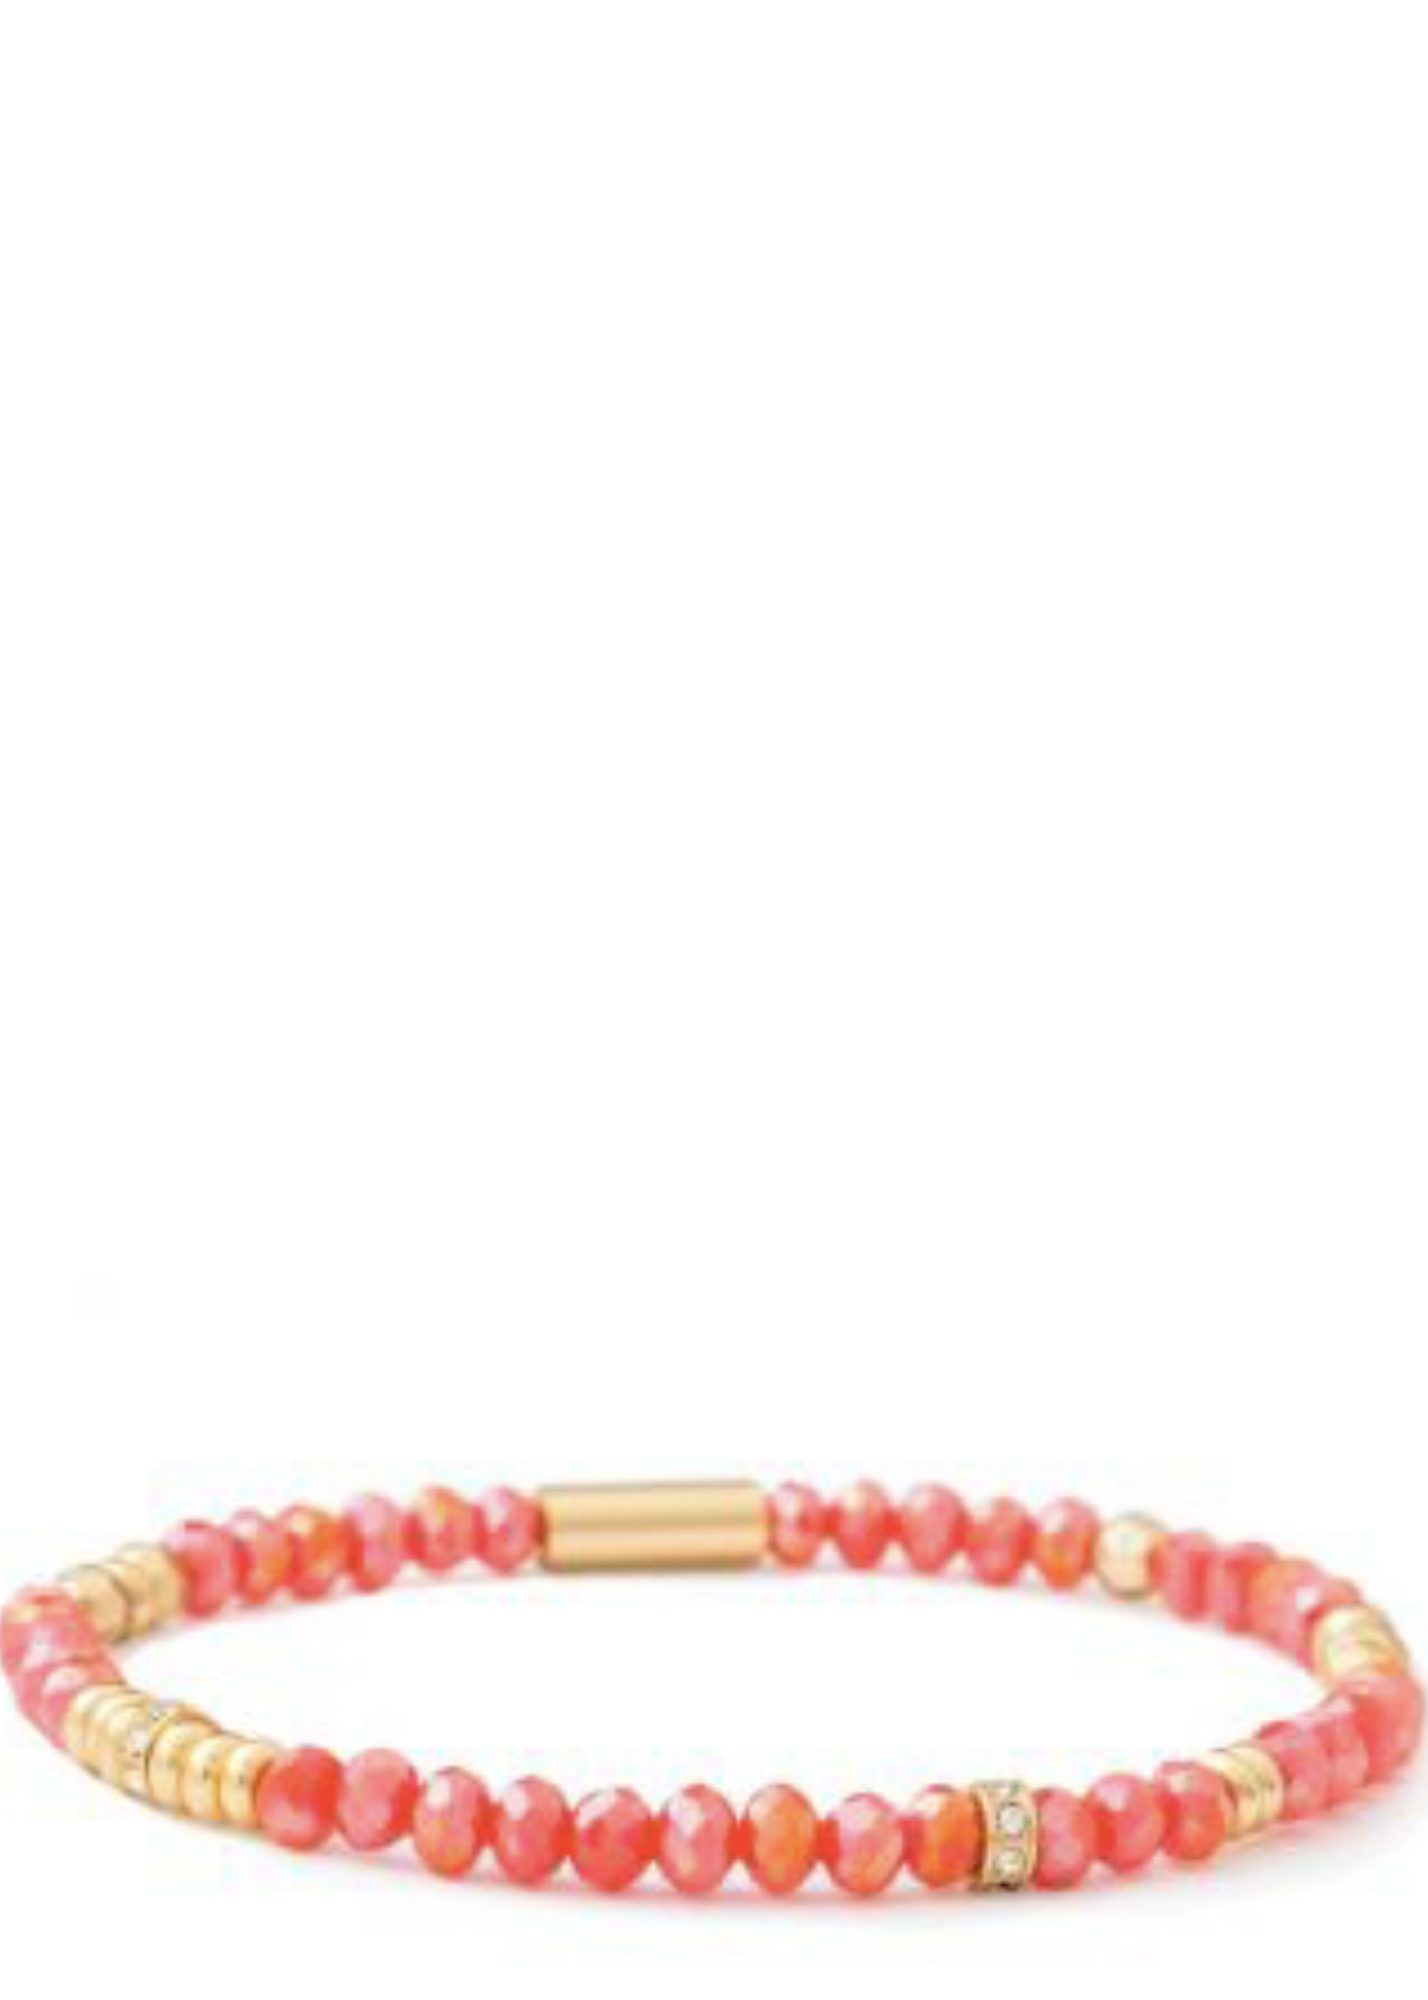 4MM Stretch Bracelet - Gold/Coral